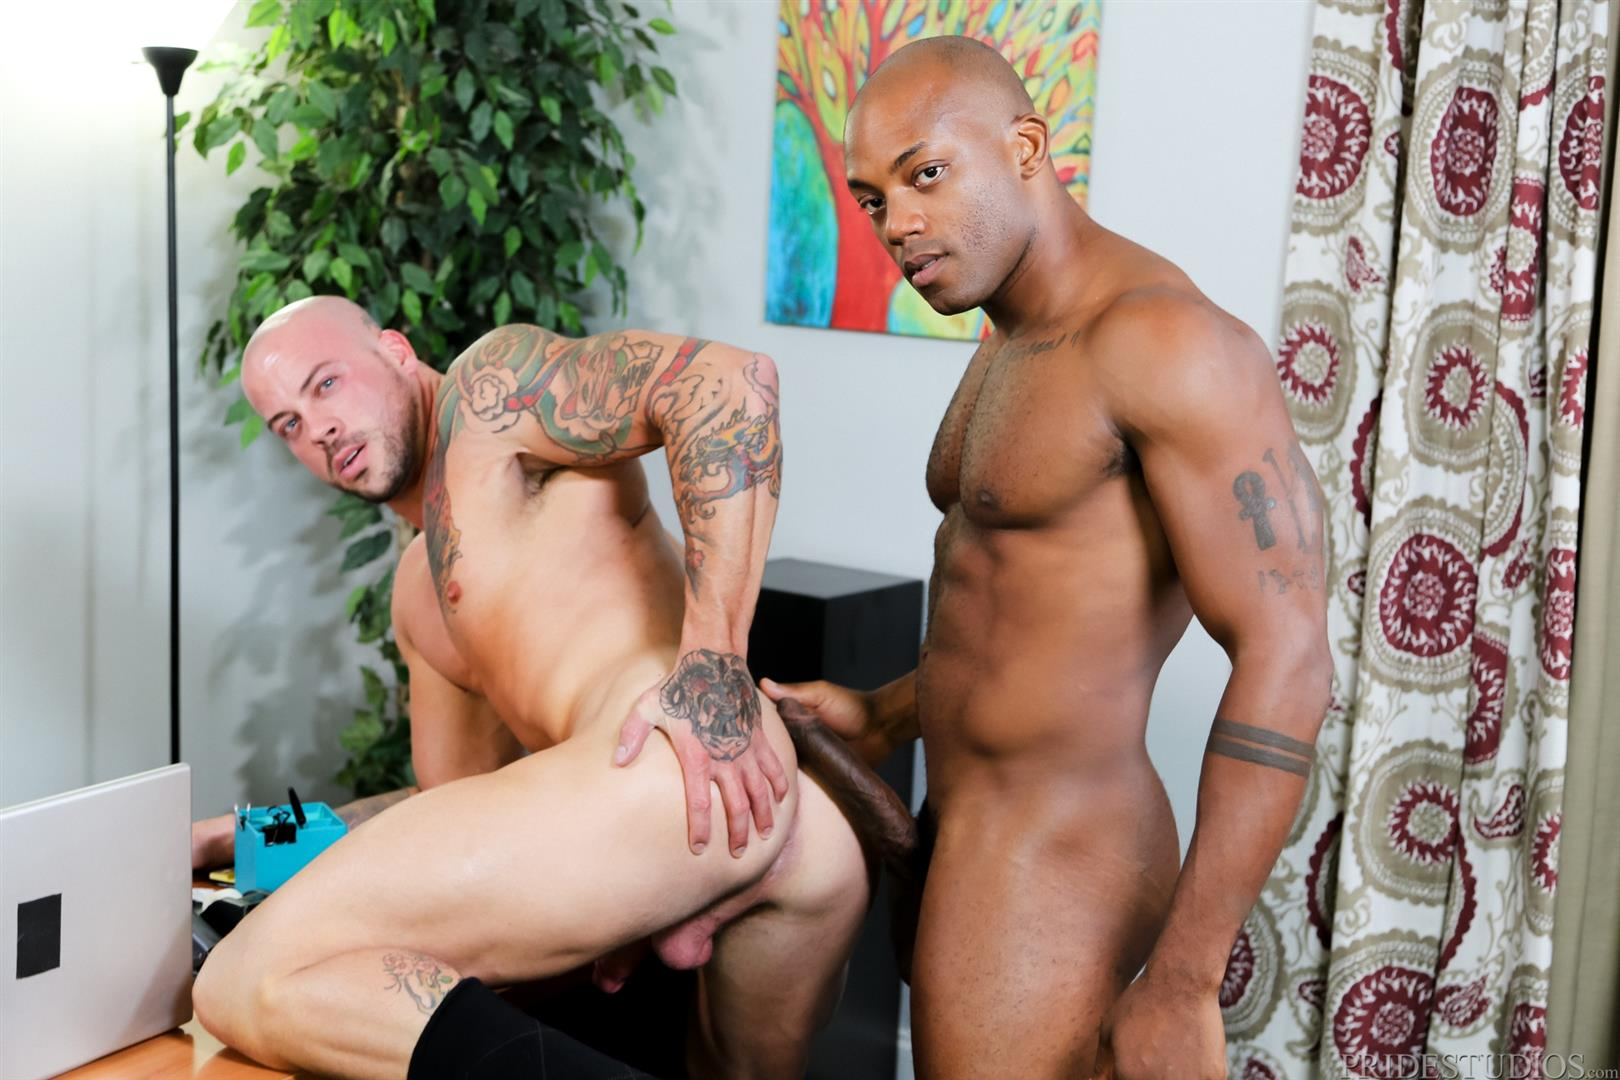 Sean Duran and Osiris Blade Extra Big Dicks Black Cock Interracial Amateur Gay Porn 12 White Muscle Hunk Takes A Big Black Cock Up The Ass During A Job Interview